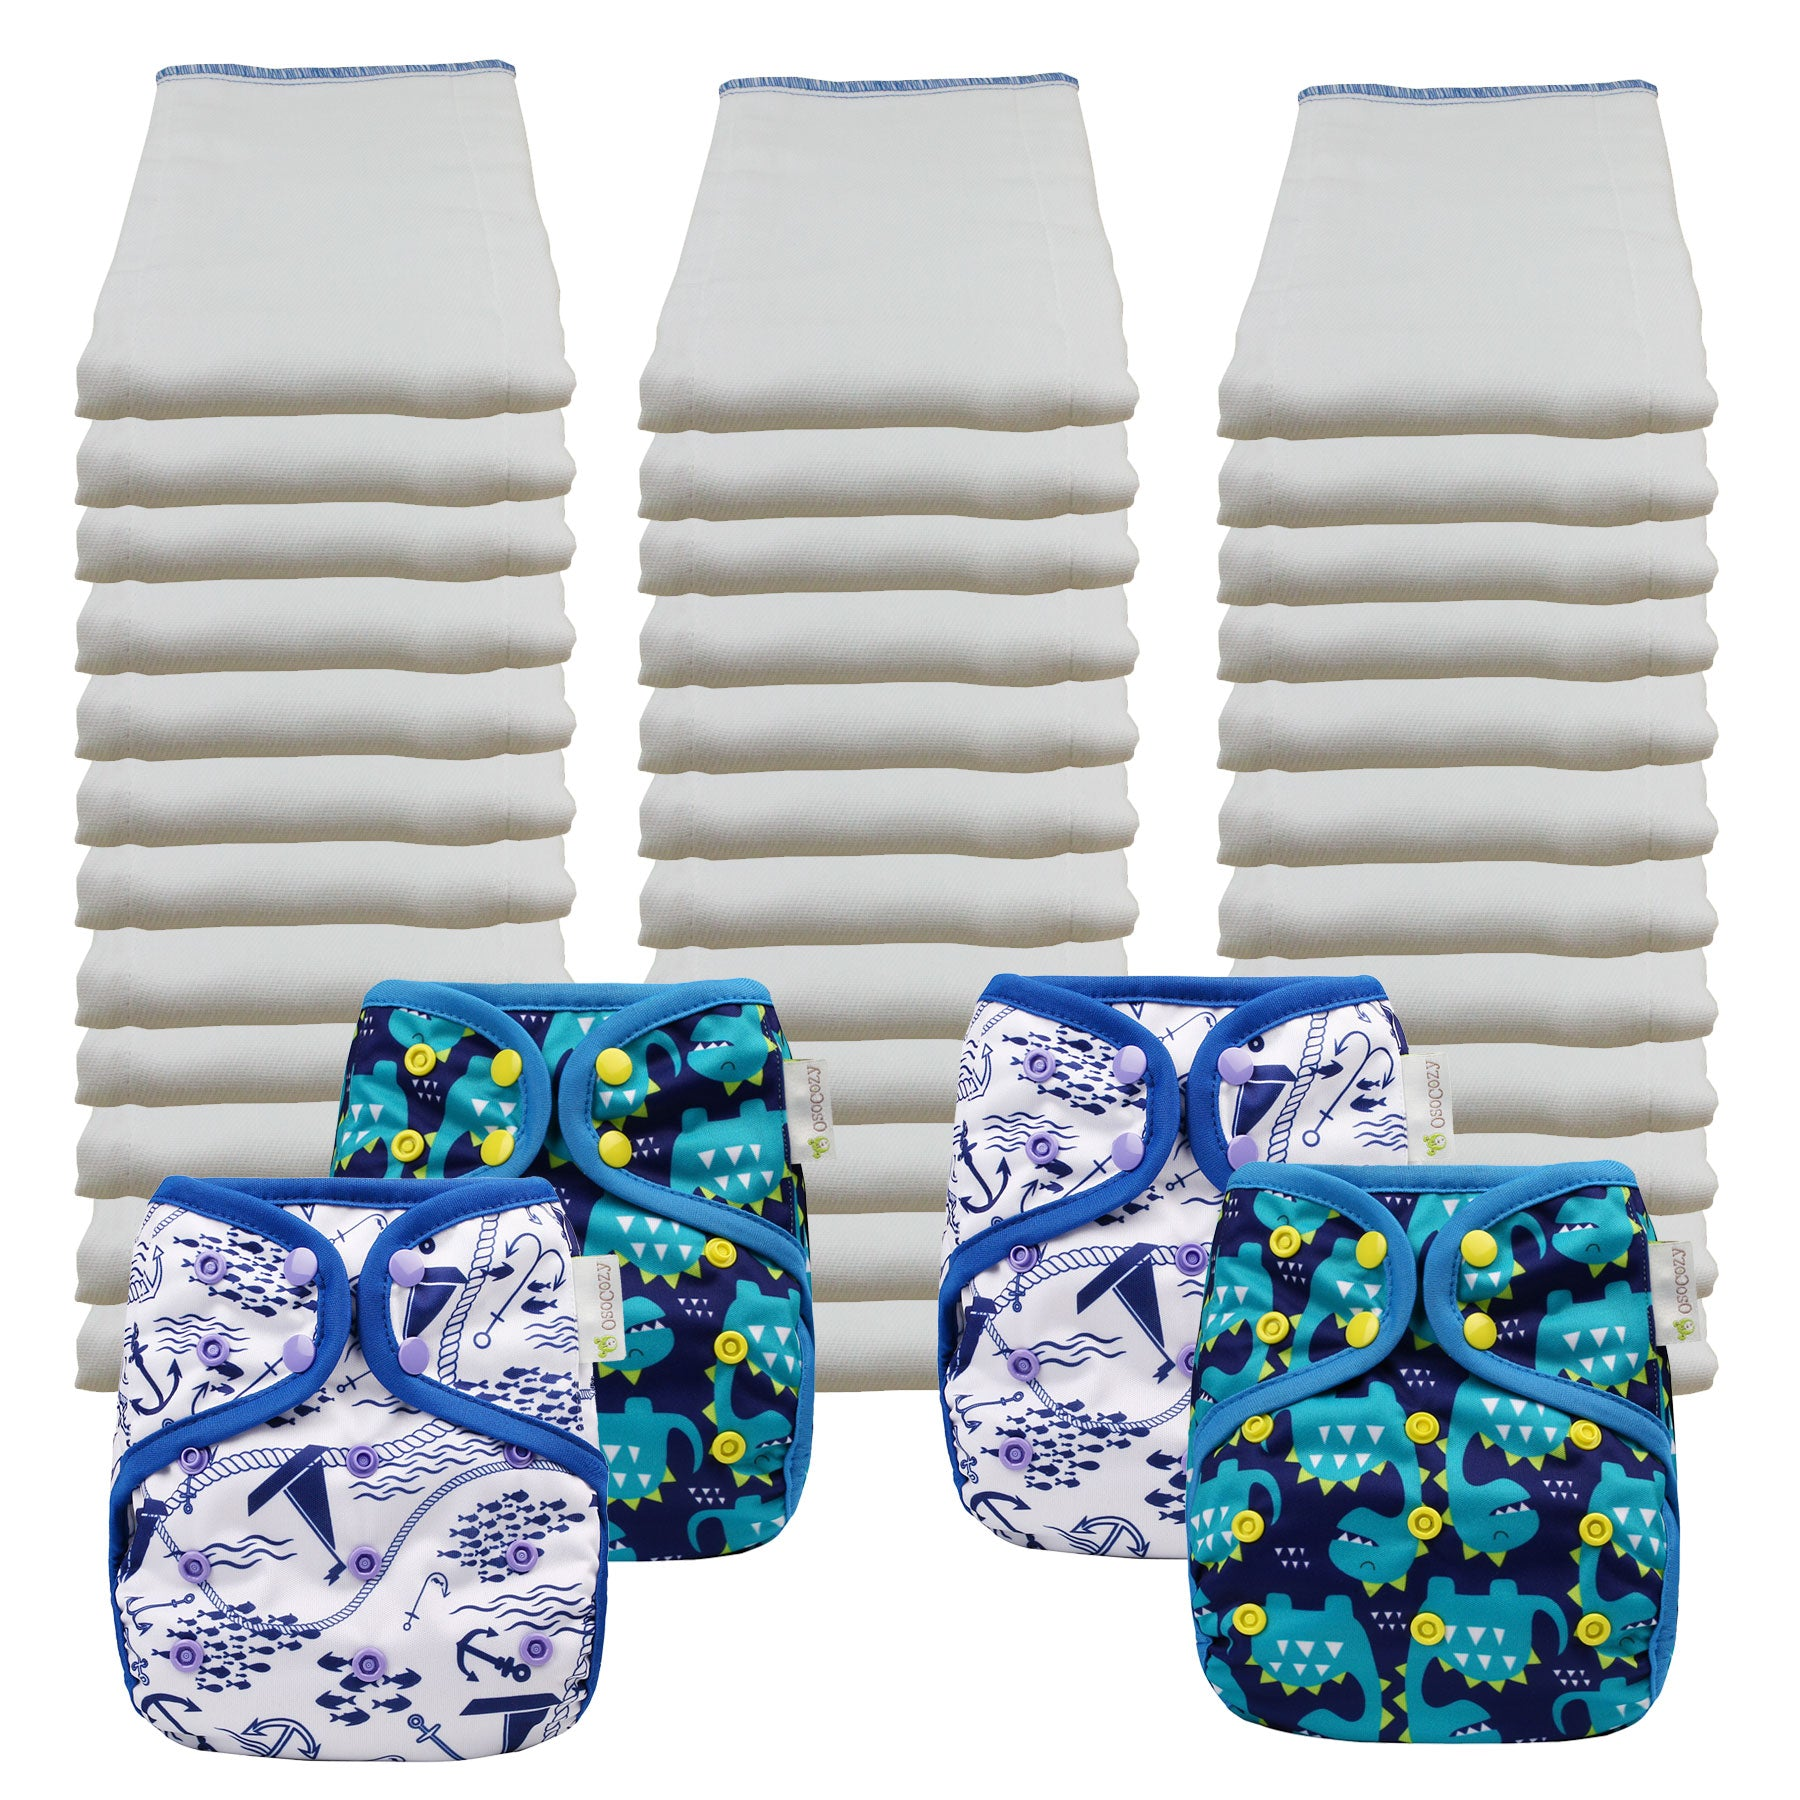 Bleached Economy Prefold Diaper Packages with OsoCozy One Sized Covers